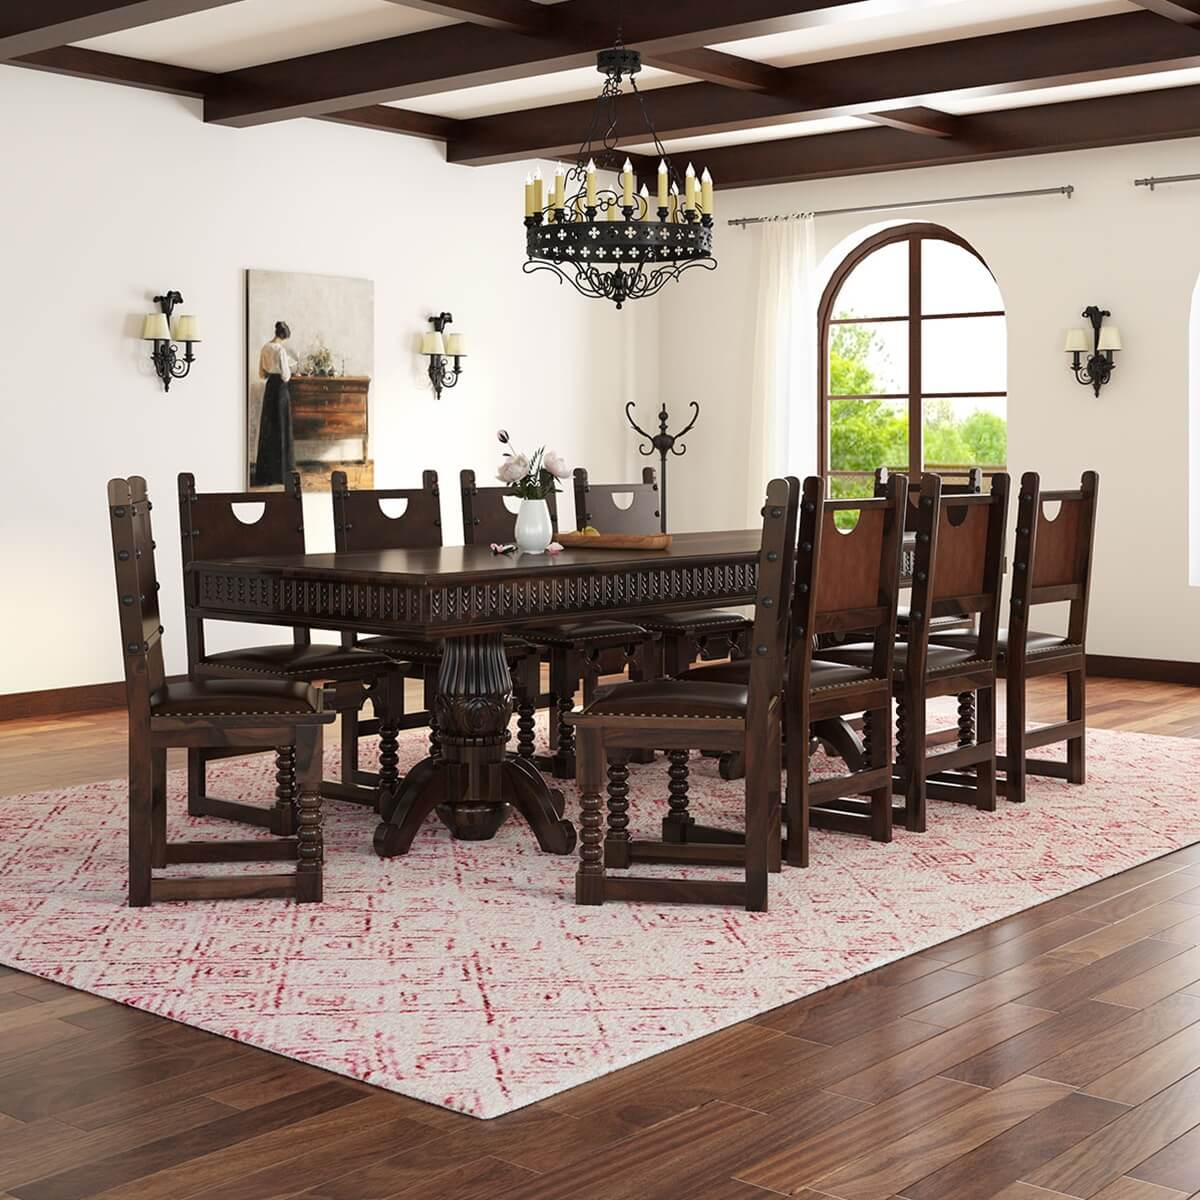 Nottingham solid wood large rustic dining room table chair set for Rustic dining room table